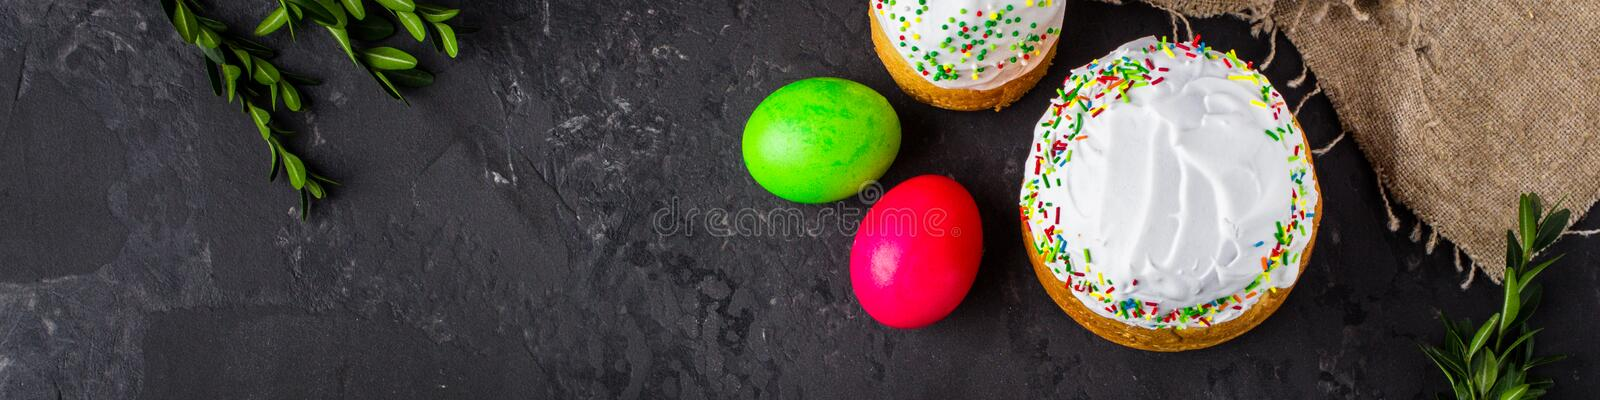 Easter cake and Easter eggs, traditional holiday attributes Happy Easter!. food background. top view. Easter cake and Easter eggs, traditional holiday attributes stock images